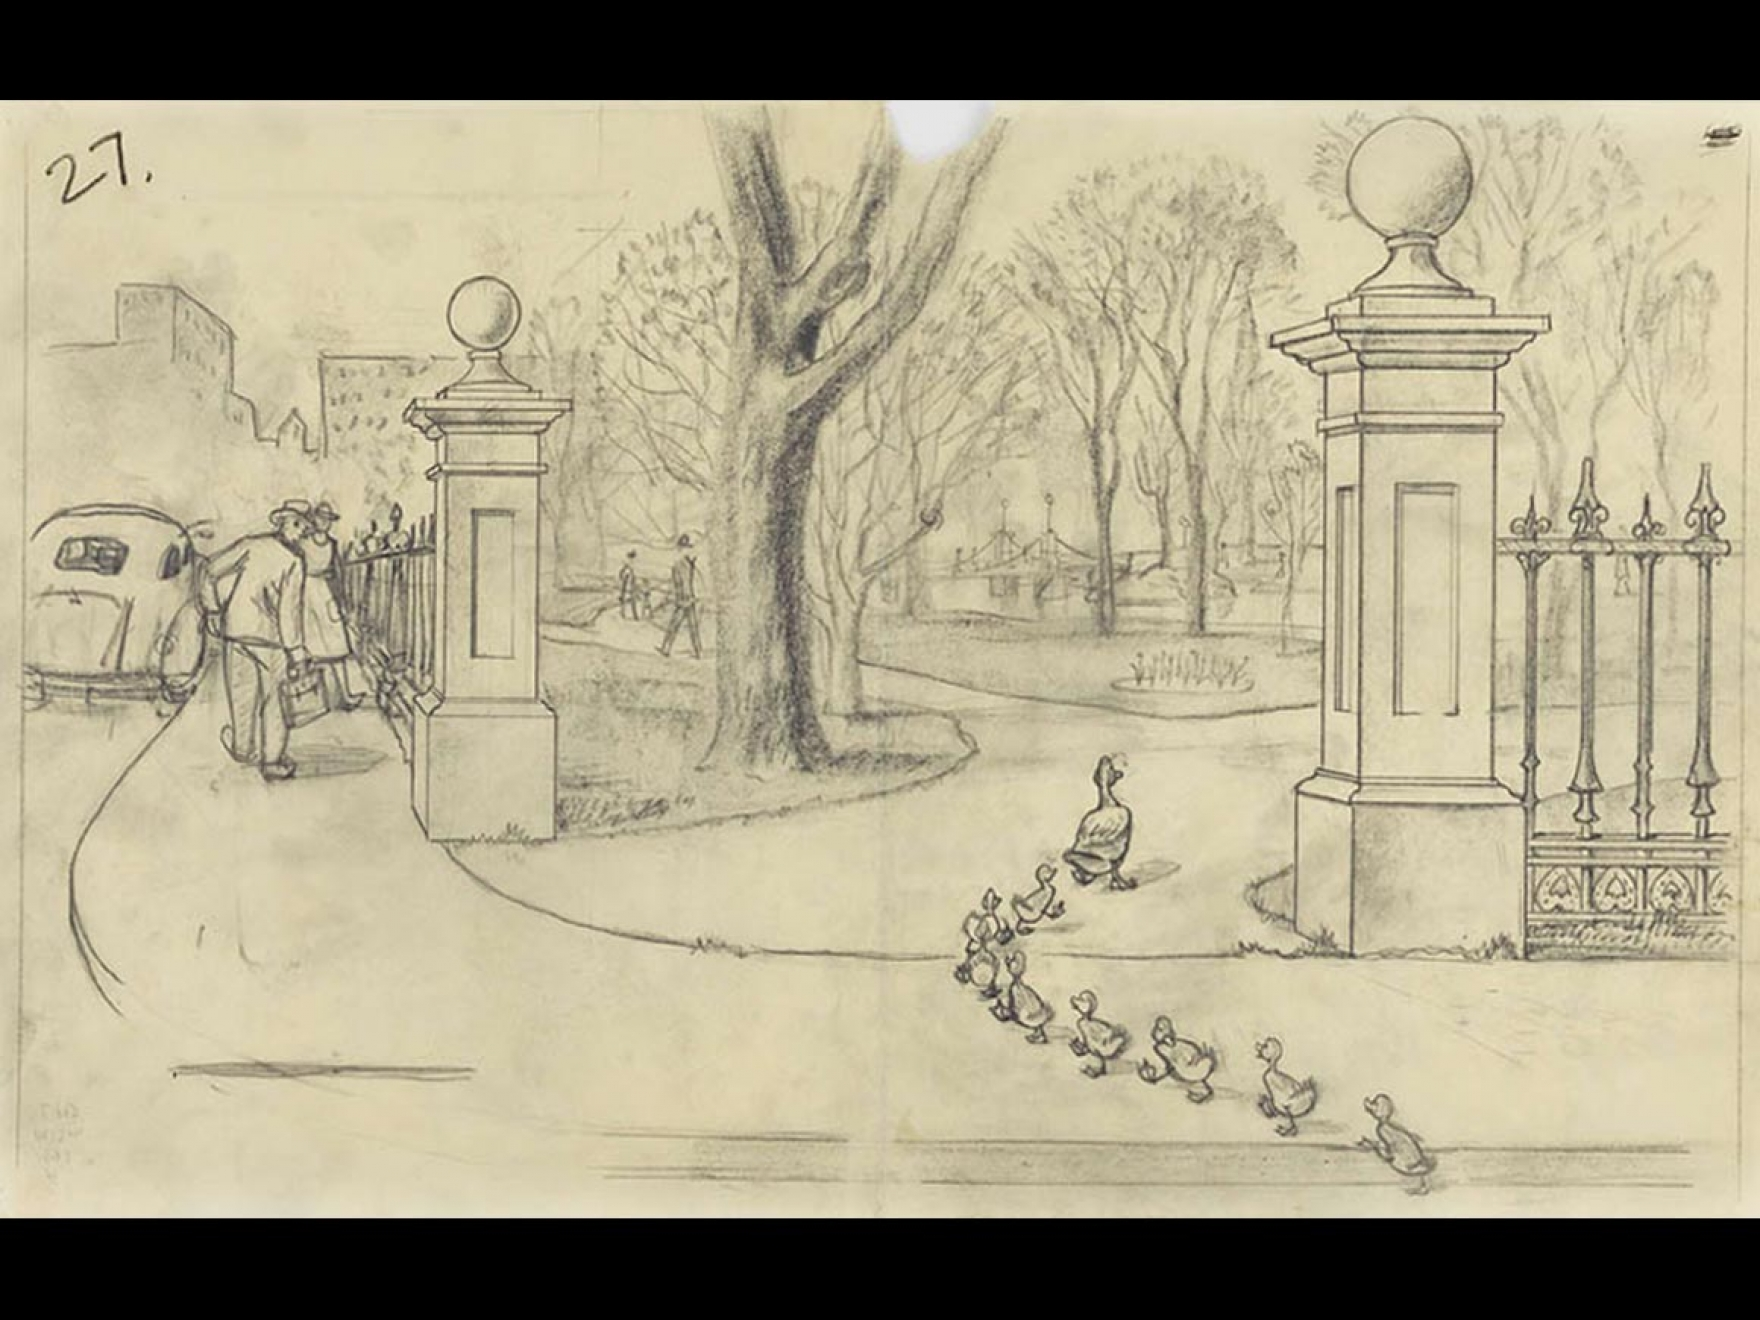 """Robert McCloskey's drawing for Make Way for Ducklings ("""". . . right on into the Public Garden,"""")"""